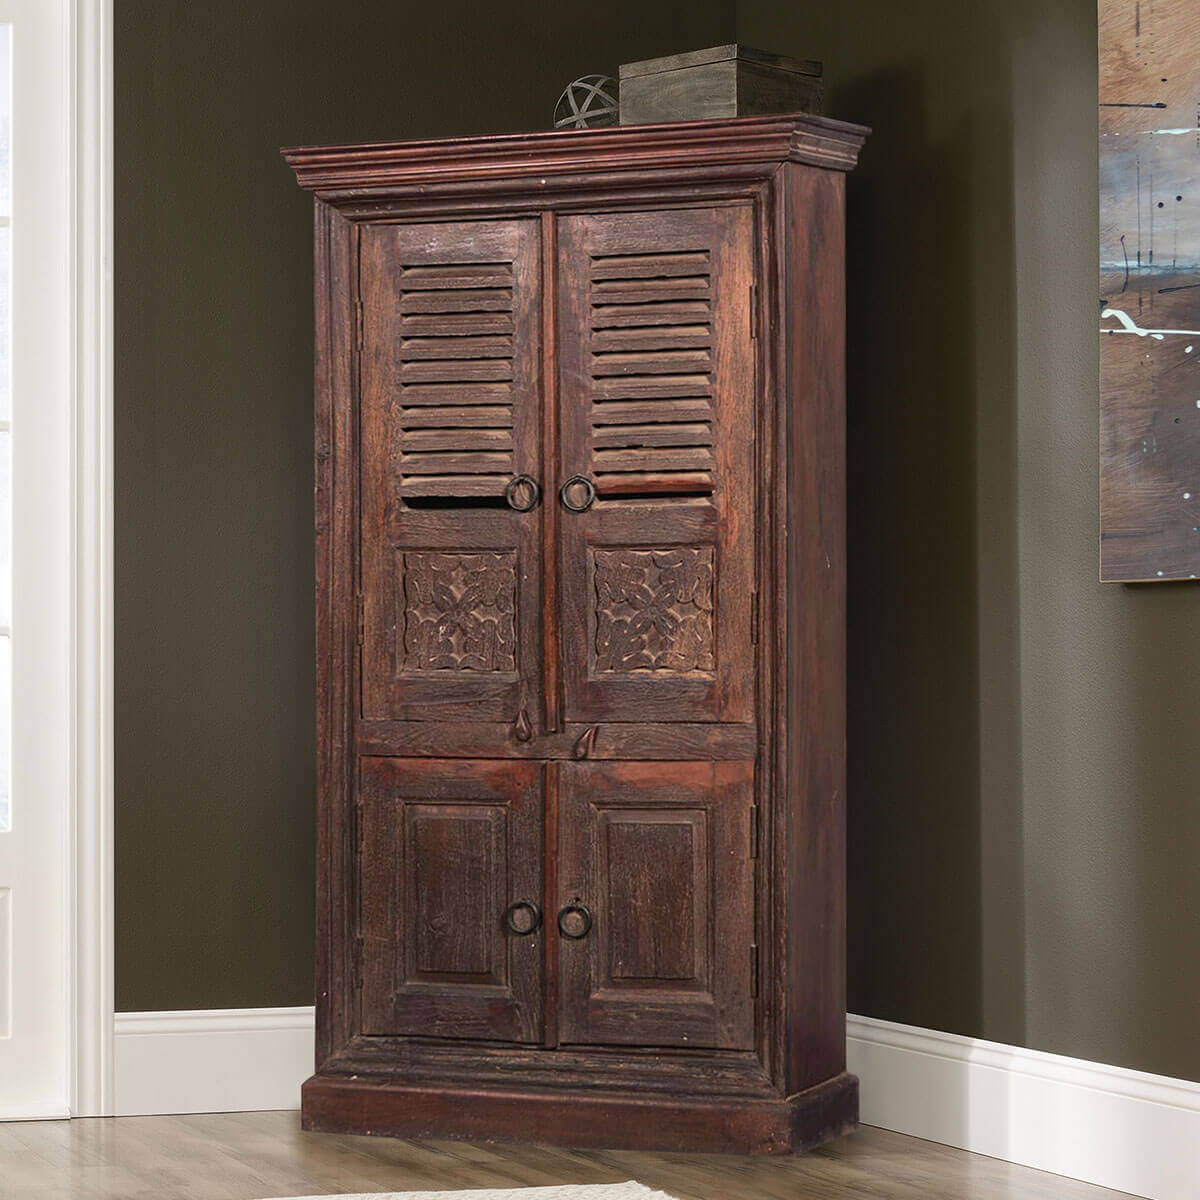 Aniwa Louvered Door Rustic Solid Reclaimed Wood Armoire With Shelves